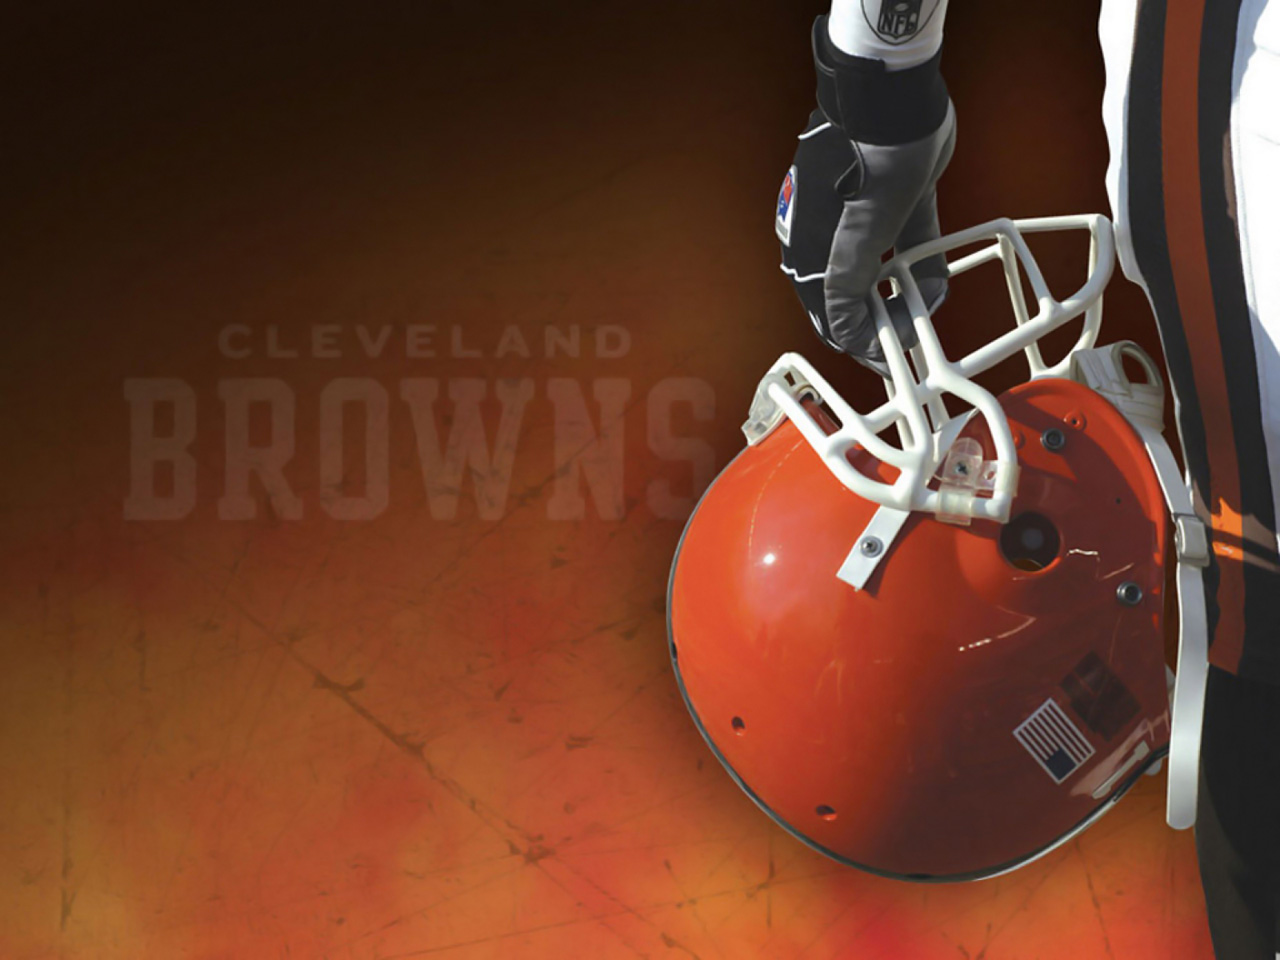 HD Browns Wallpapers | Download Free - 39277096